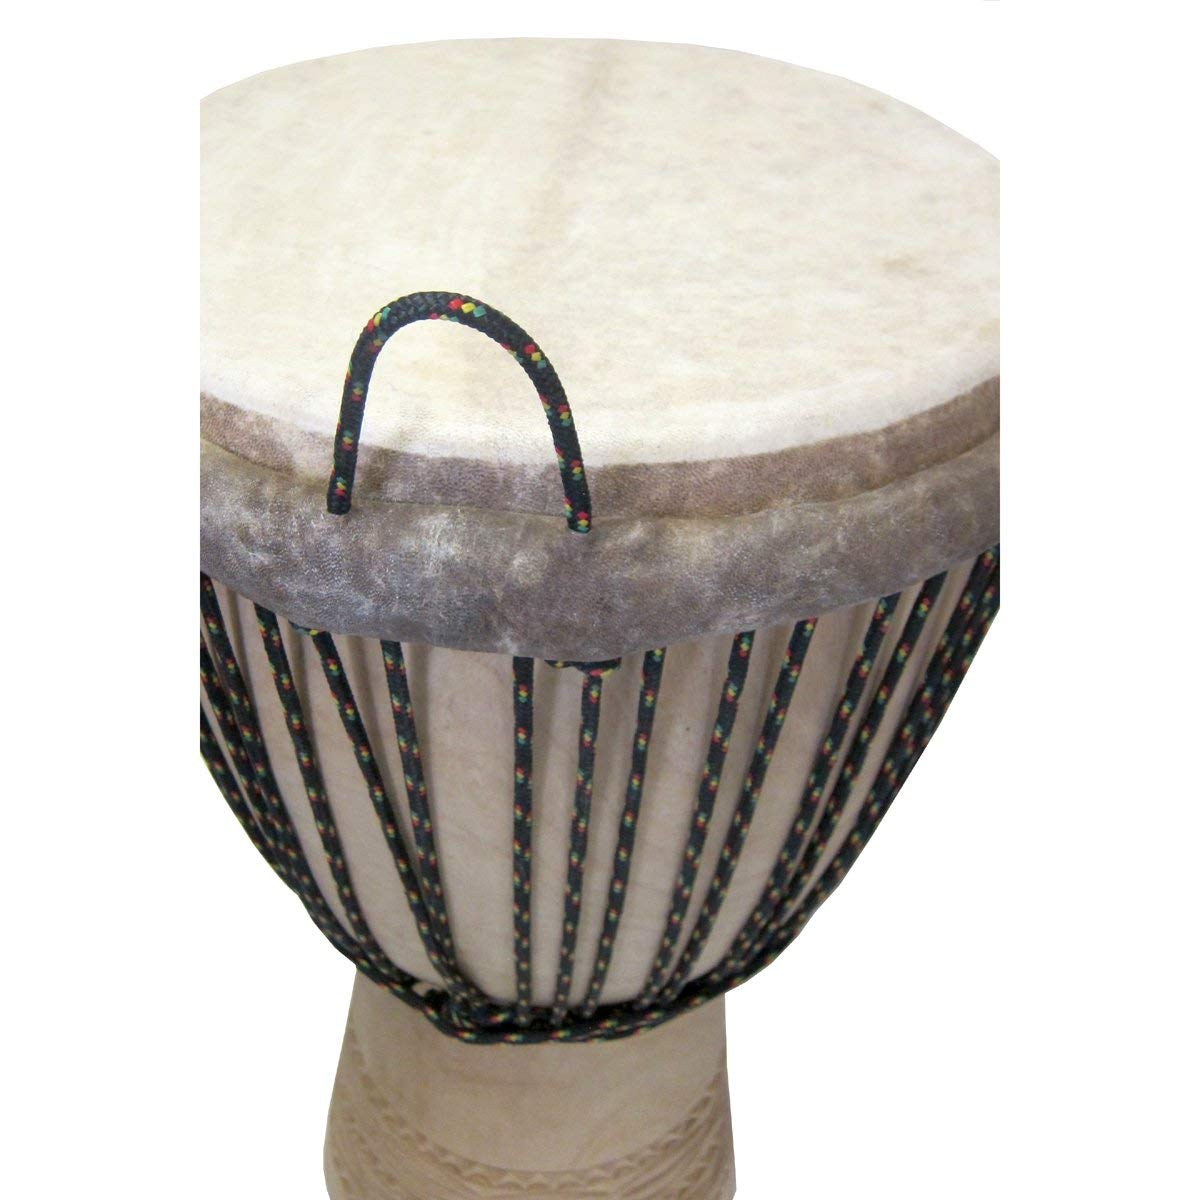 Paragon Heartwood Djembe Drum From Mali - 13x24 (Melina Wood) - Professional grade, Custom Tuned, New by Africa Heartwood Project by Africa Heartwood Project